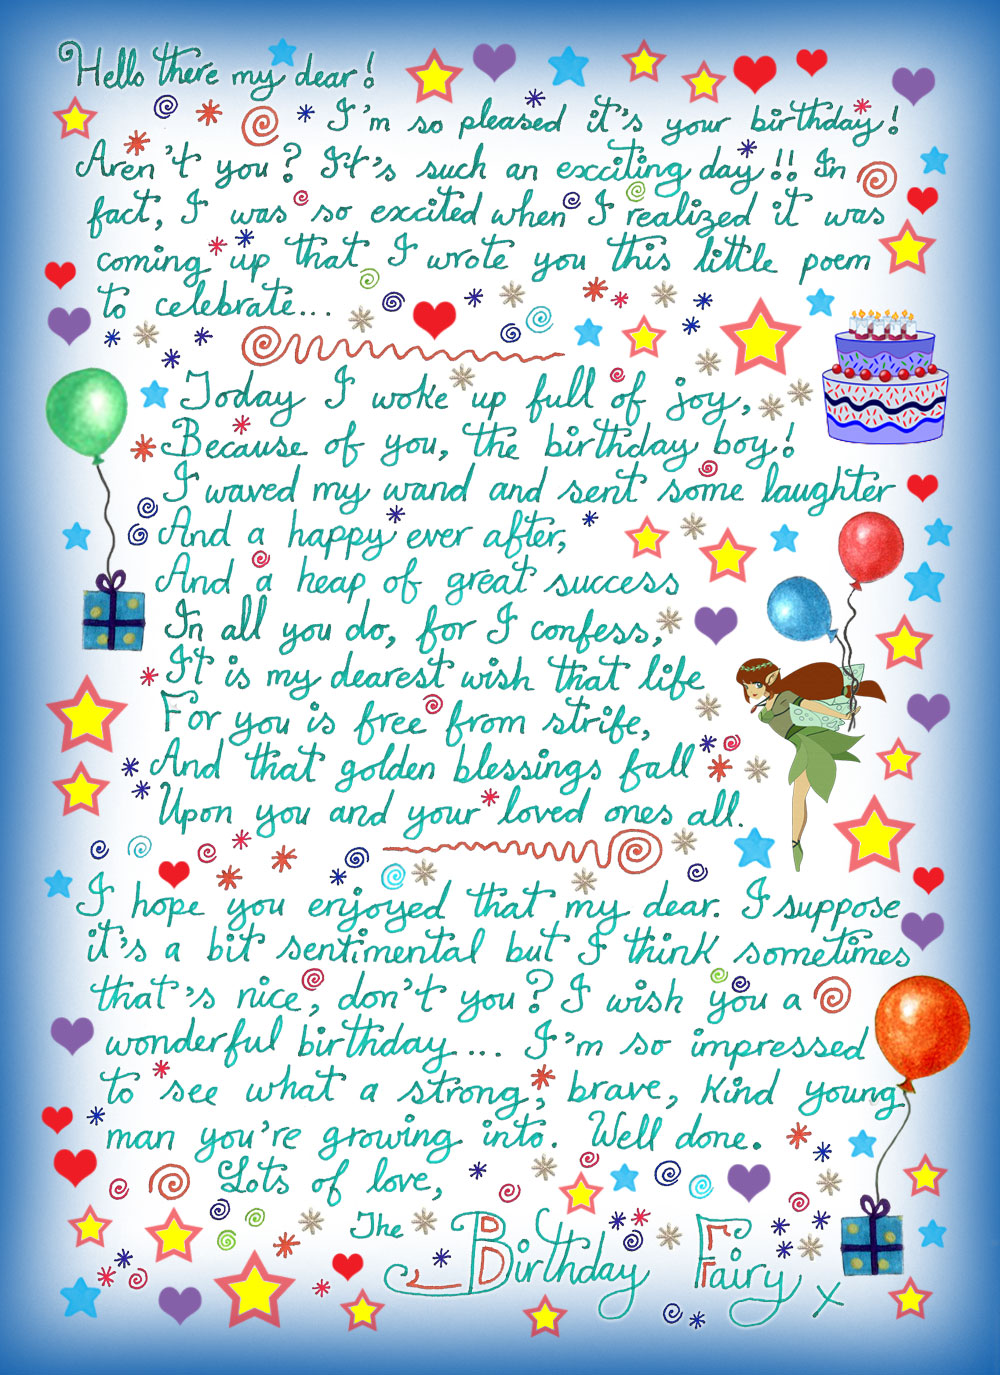 Birthday Fairy Letter with Poem for a Boy